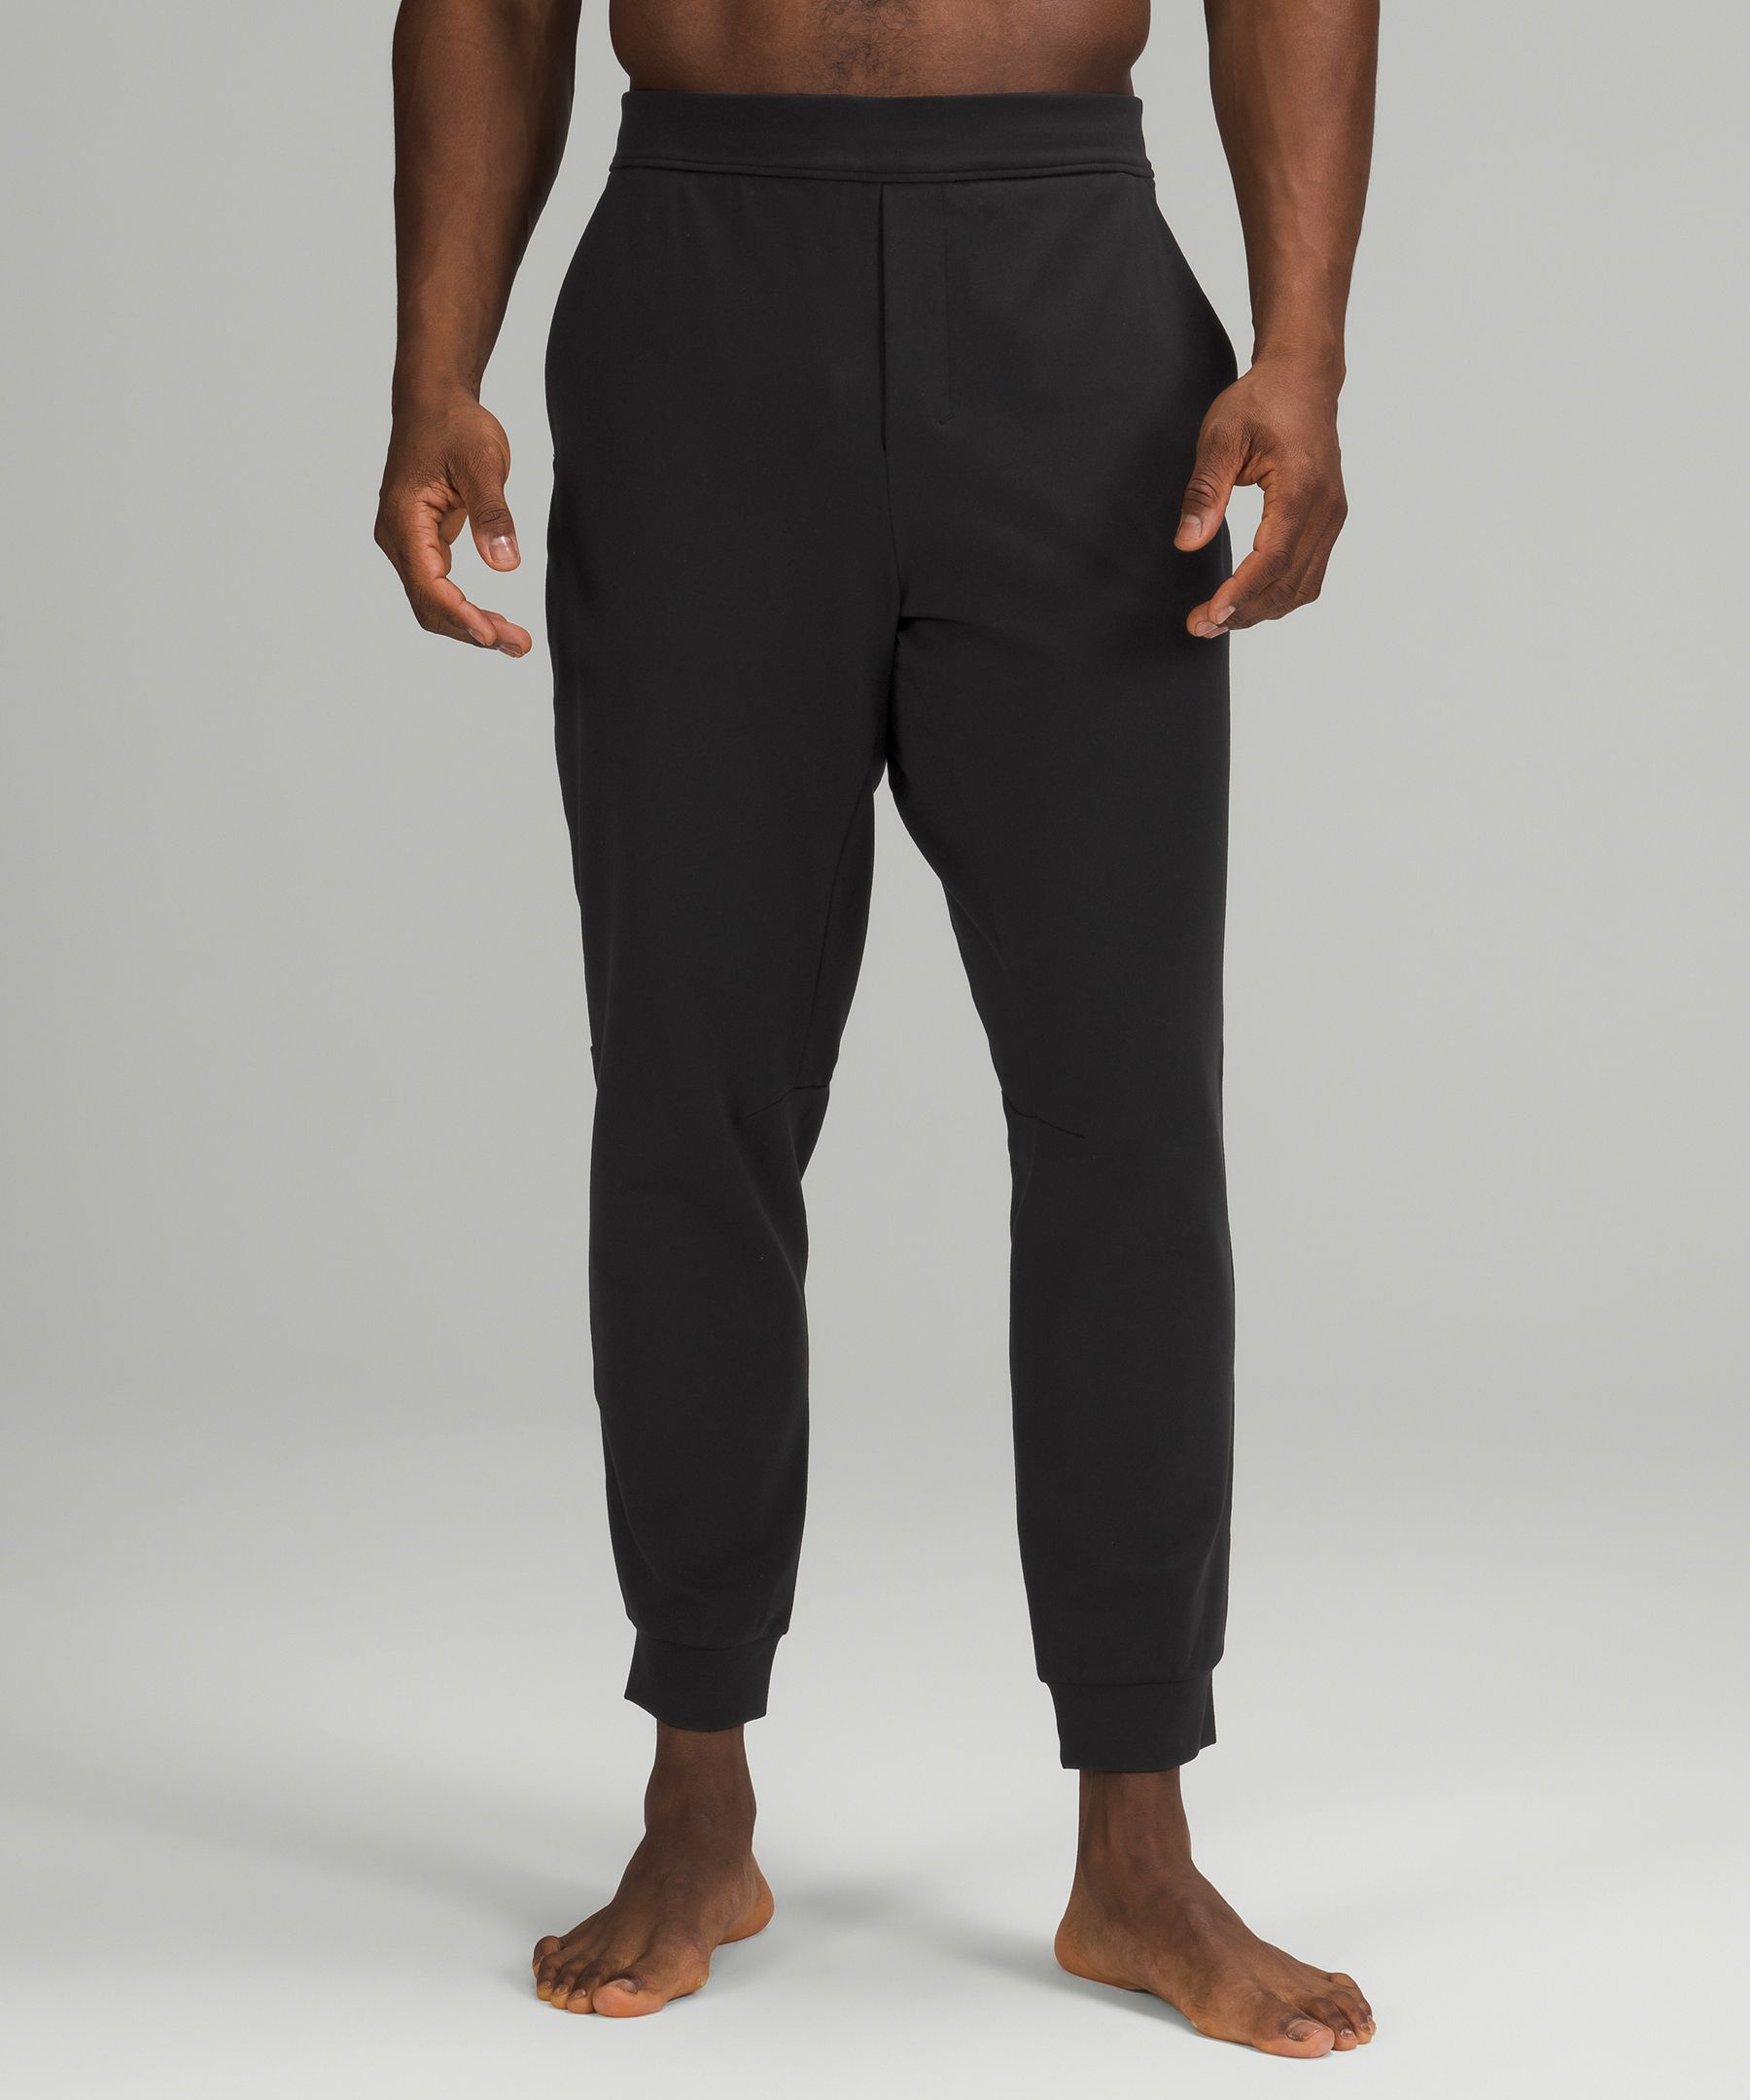 We made these soft,  sweat-wicking pants to help  you power through your practice.